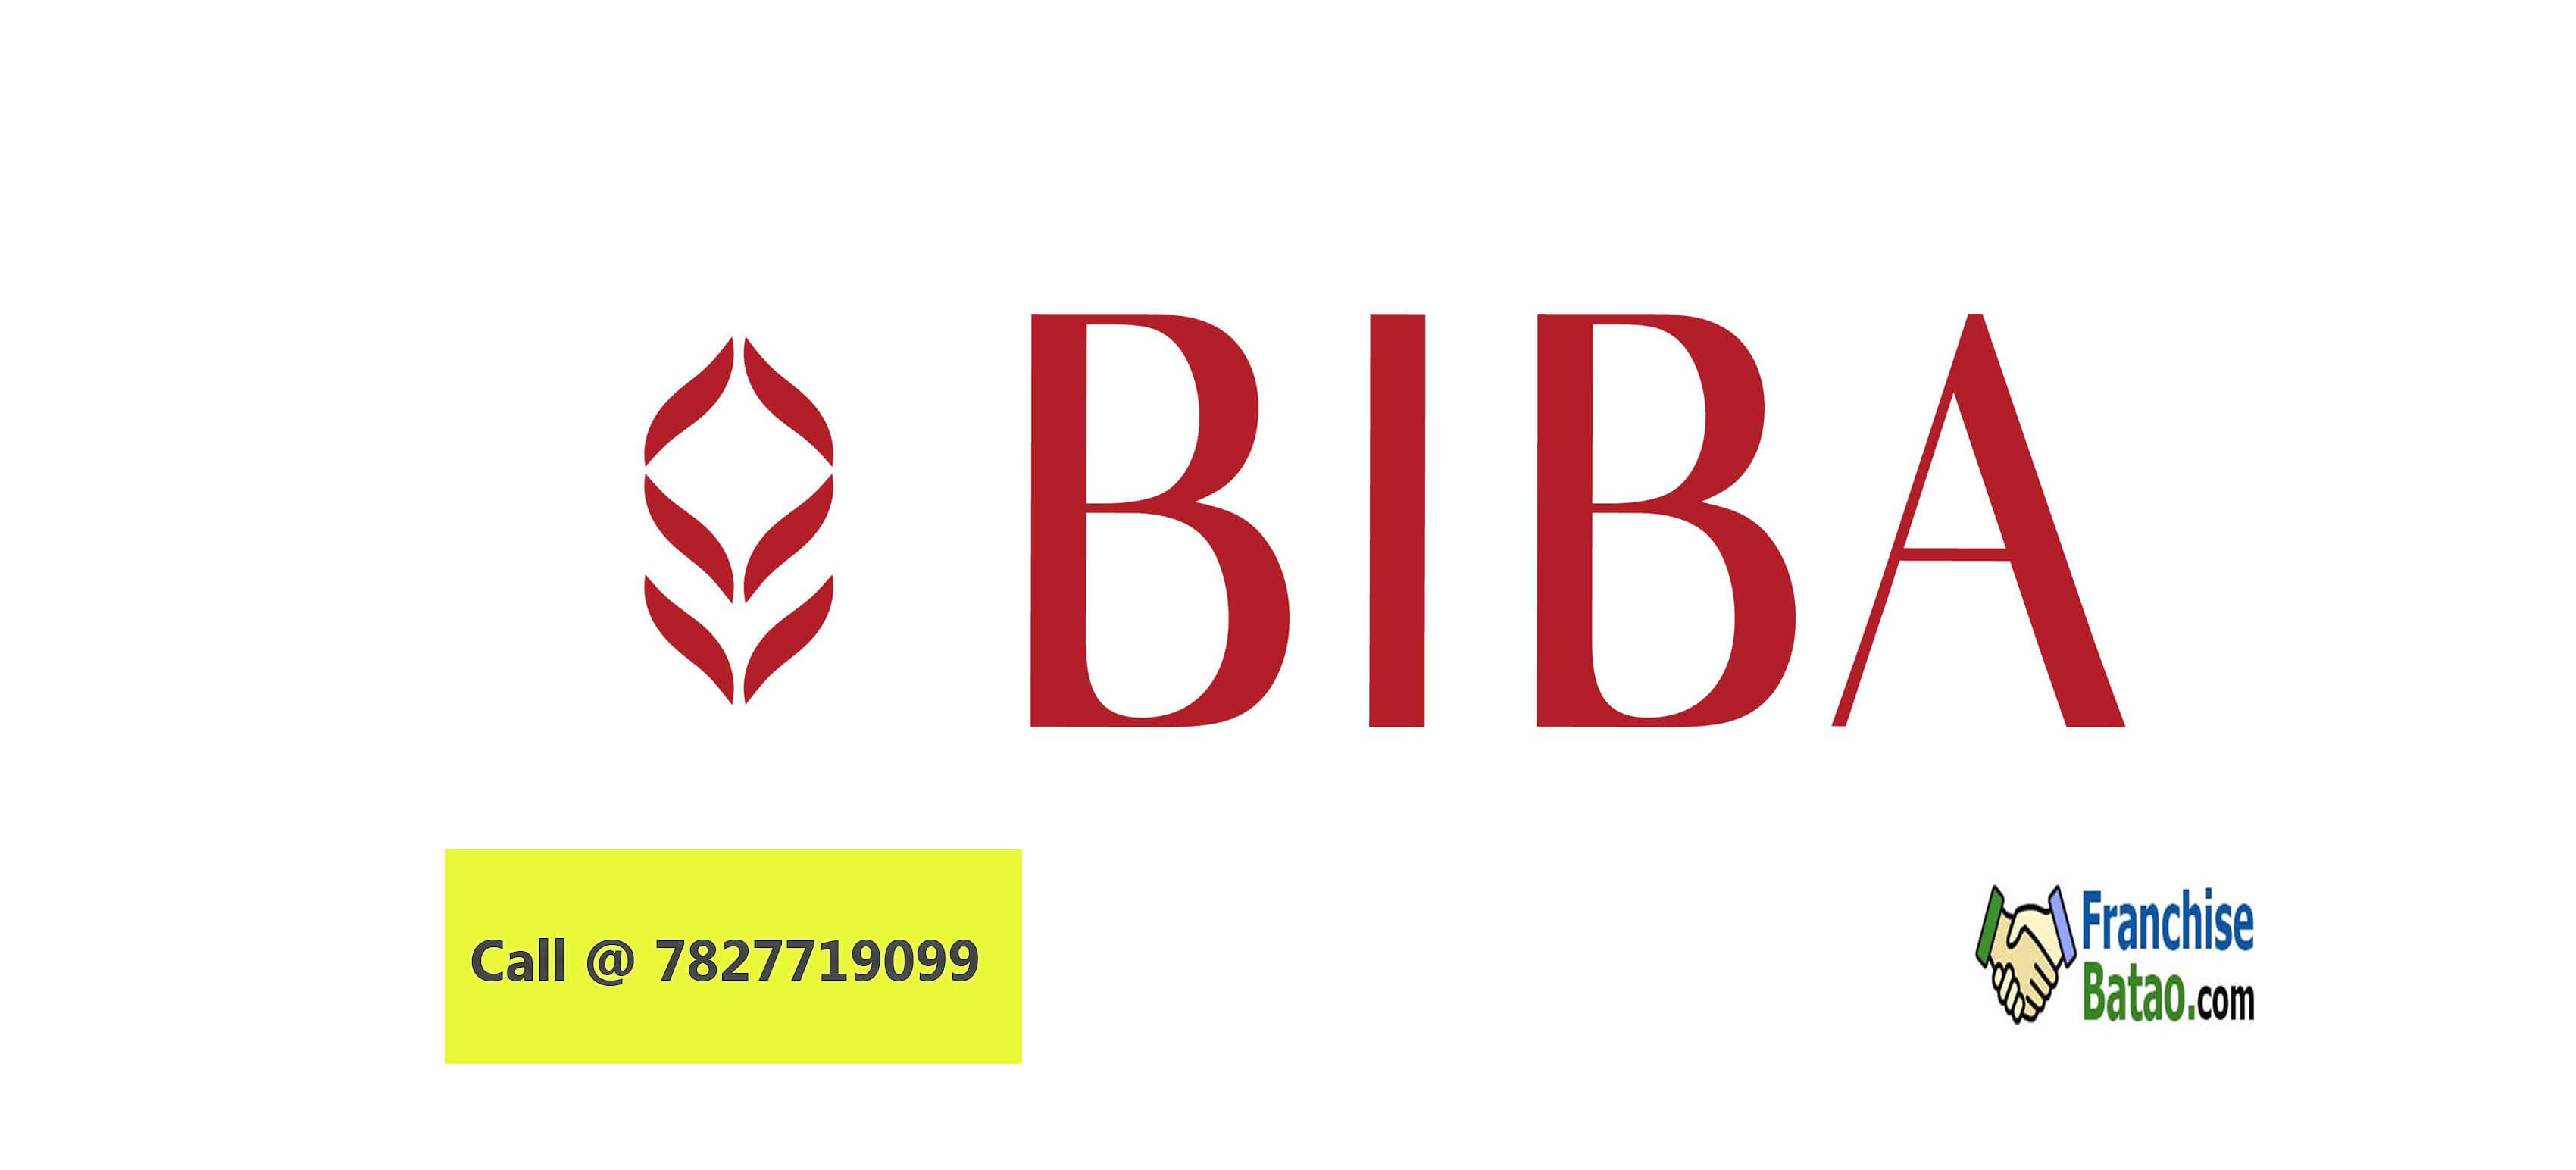 BIBA franchise available in India